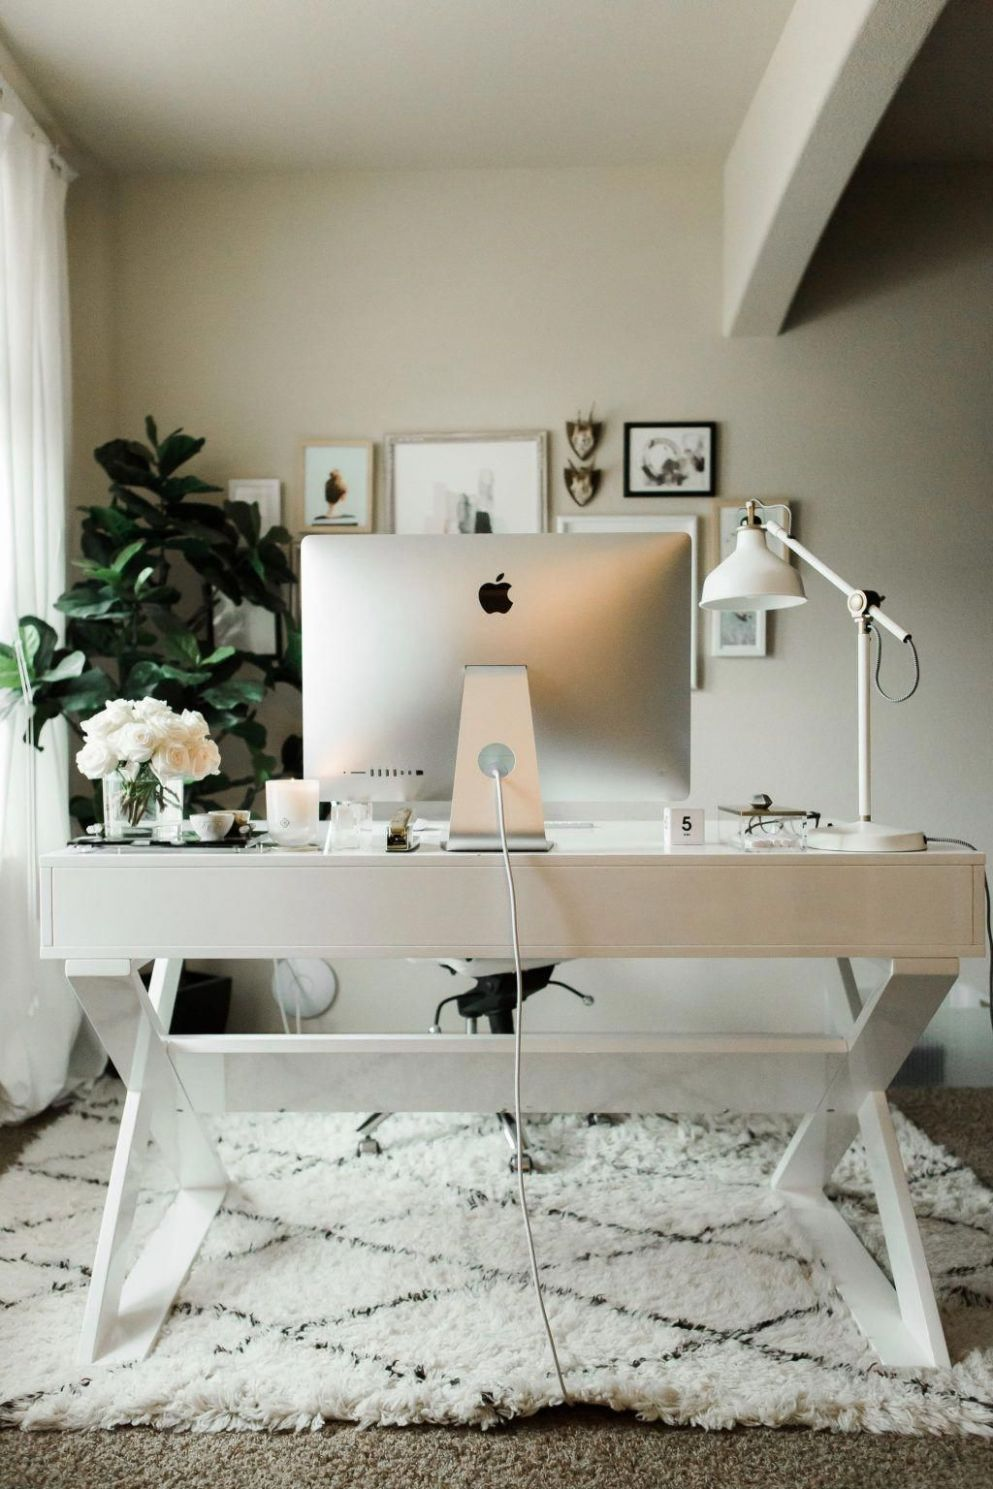 12+ Delightful Home Office Design Ideas For Women in 12 (With ..